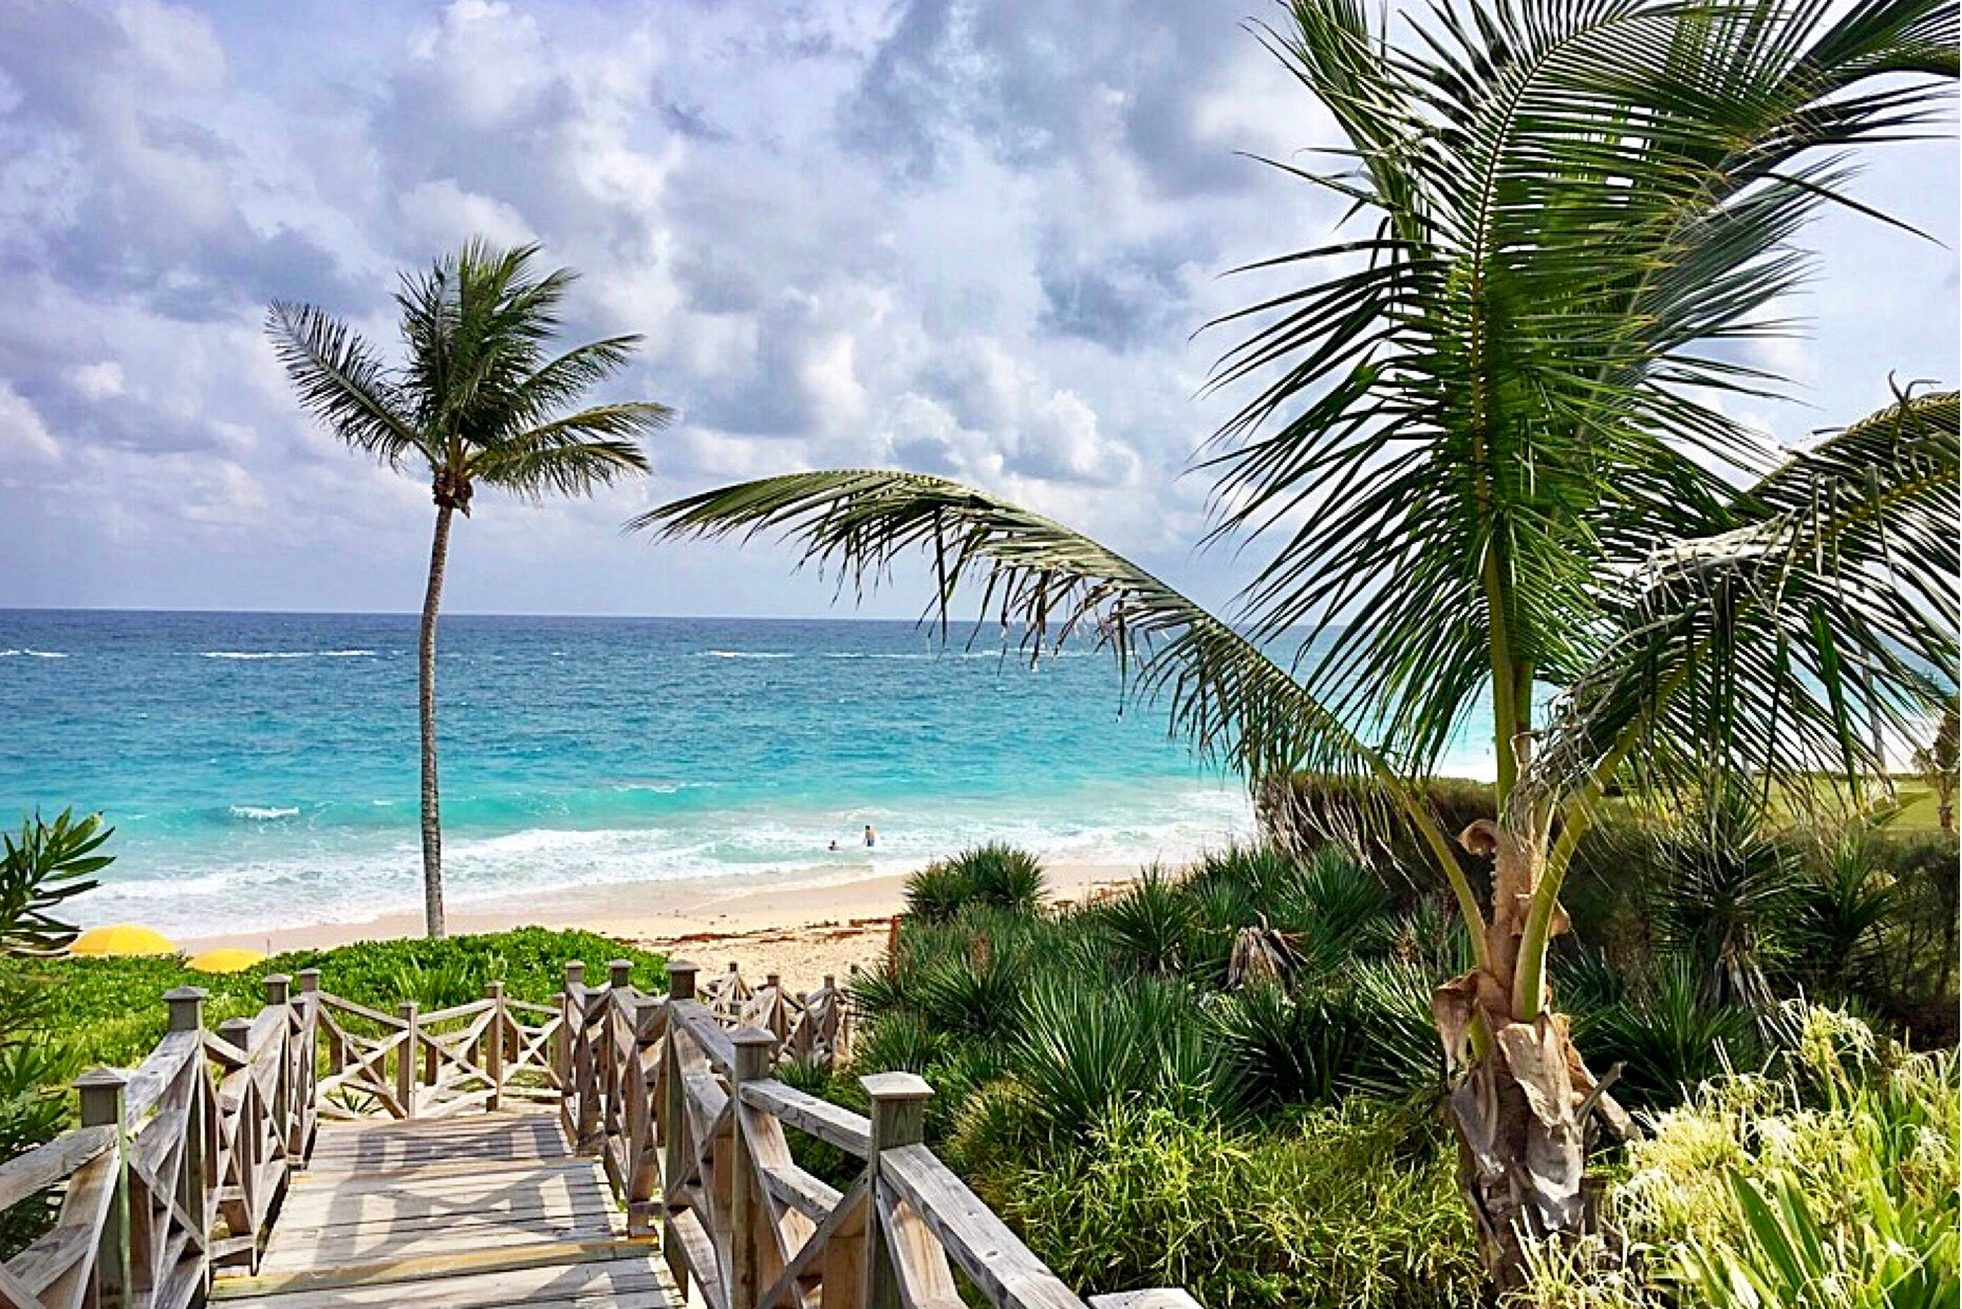 Bermuda Ocean View Path to happiness